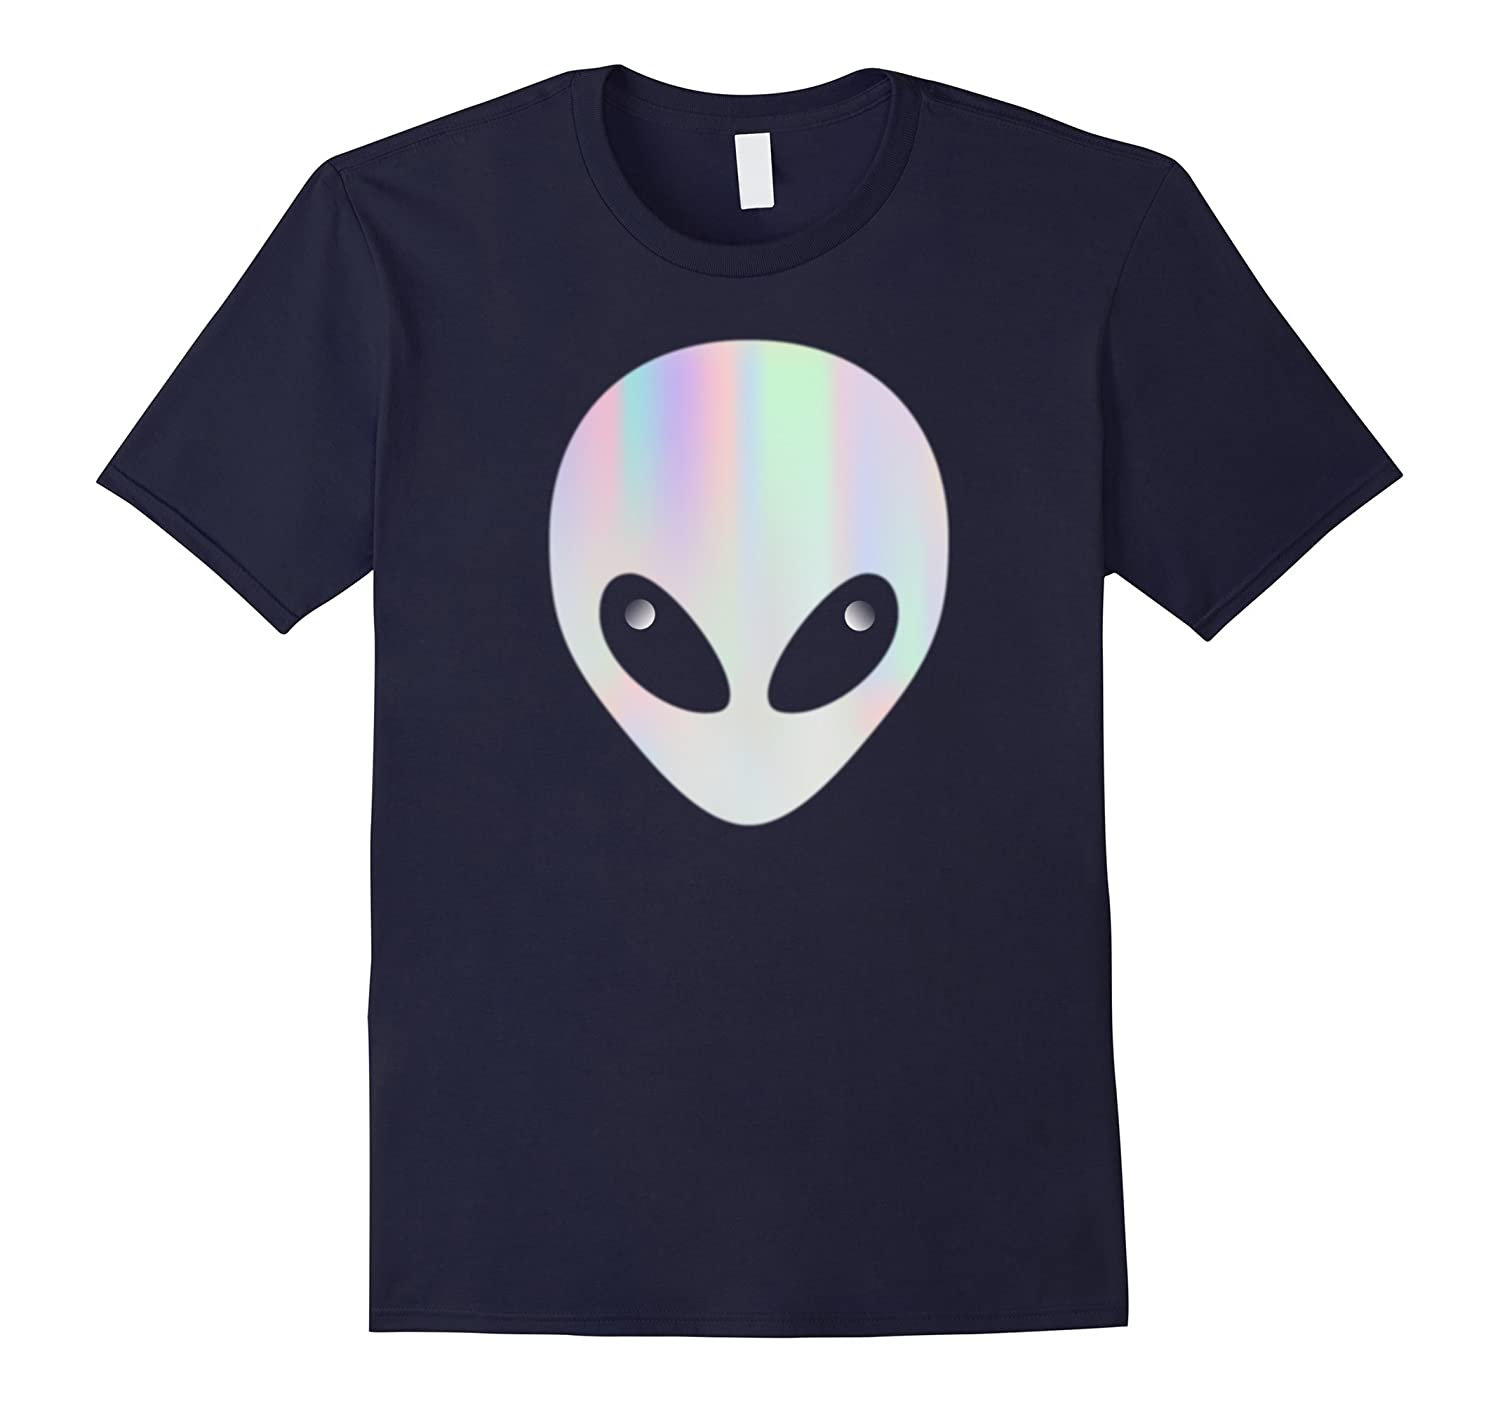 ALIEN HEAD T SHIRT HOLOGRAPHIC VAPORWAVE AESTHETIC-TH